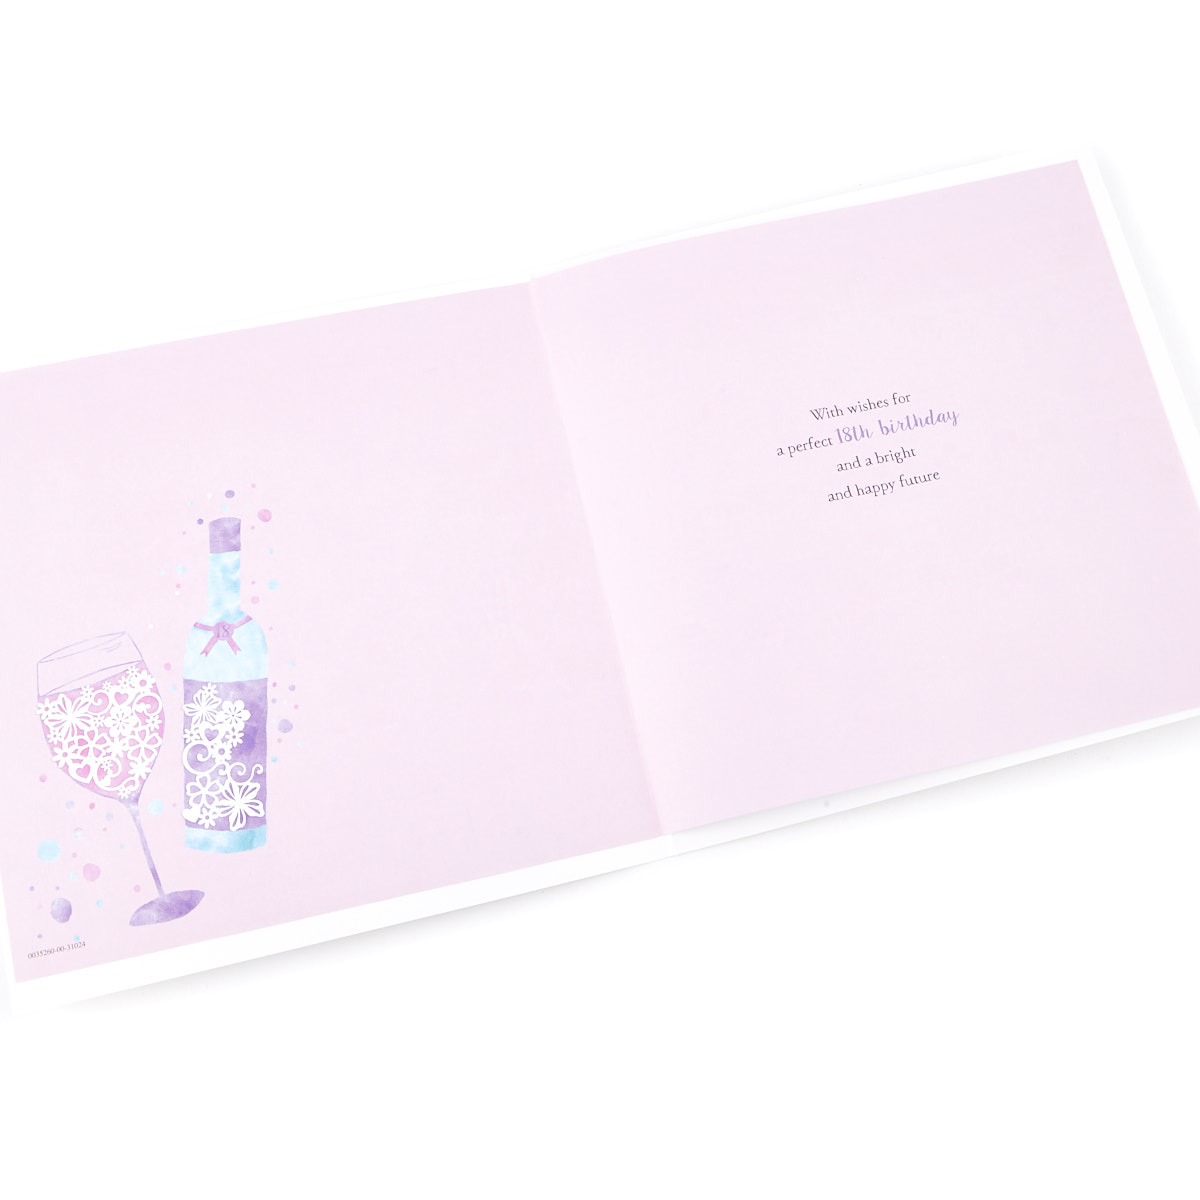 exquisite collection 18th birthday card any female recipient stickers included